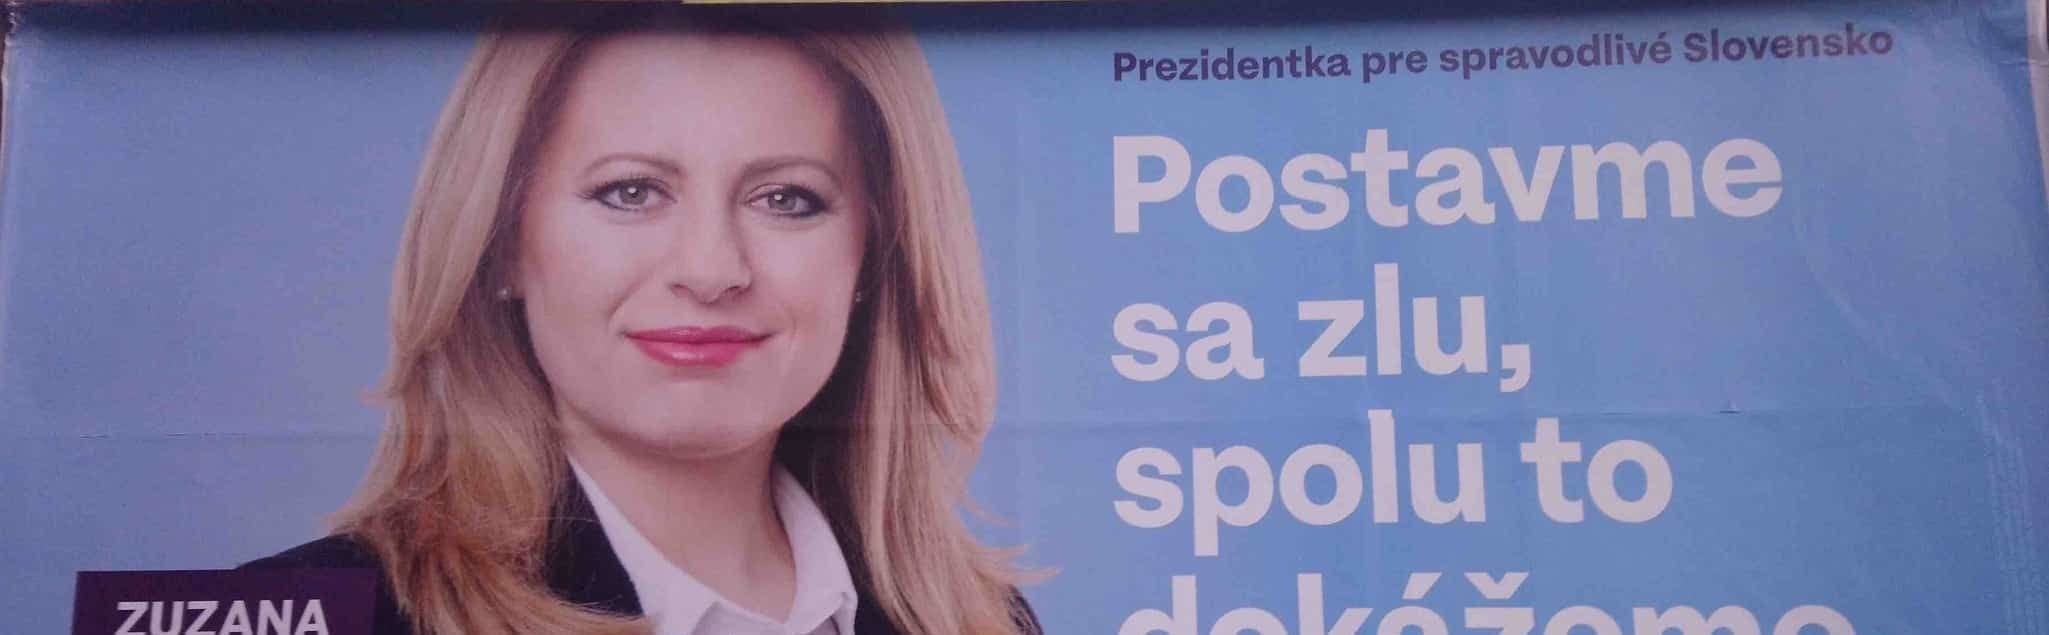 Slovakia: What can the European Left learn from Zuzana Caputova's victory?.jpg